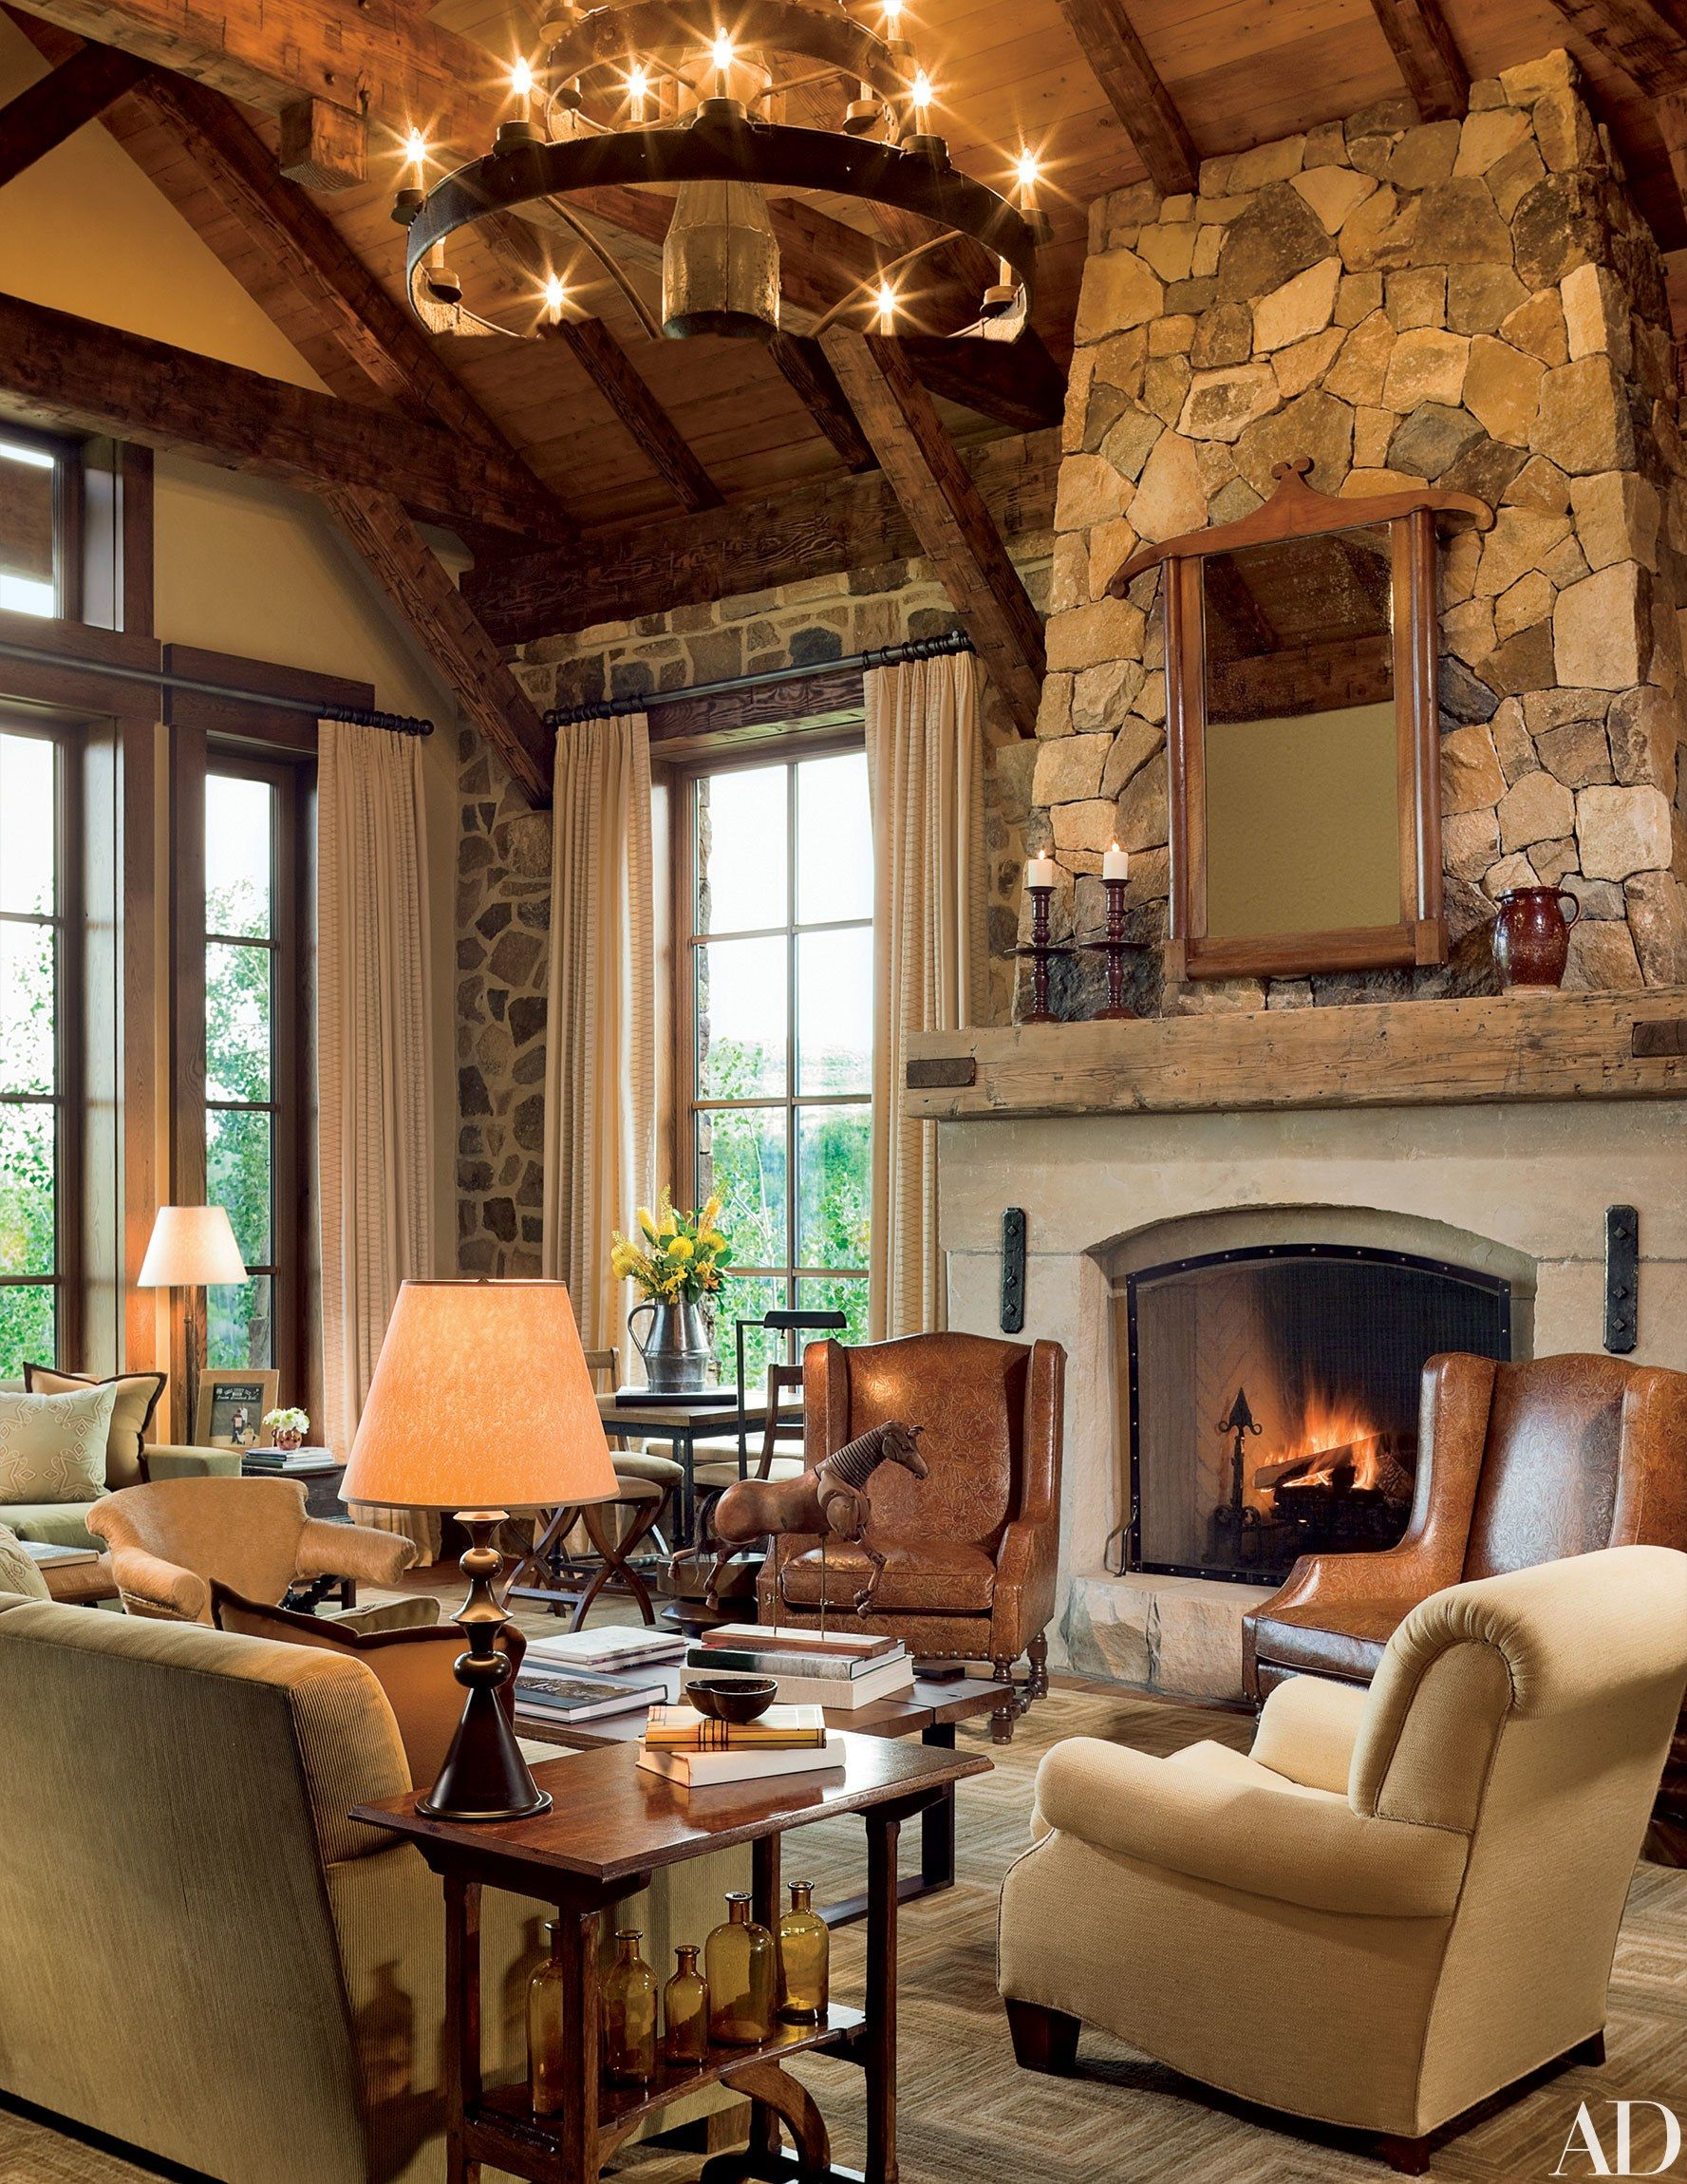 Pictures Of Interior Design Living Rooms: Ranch Homes That Evoke Classic Country Style